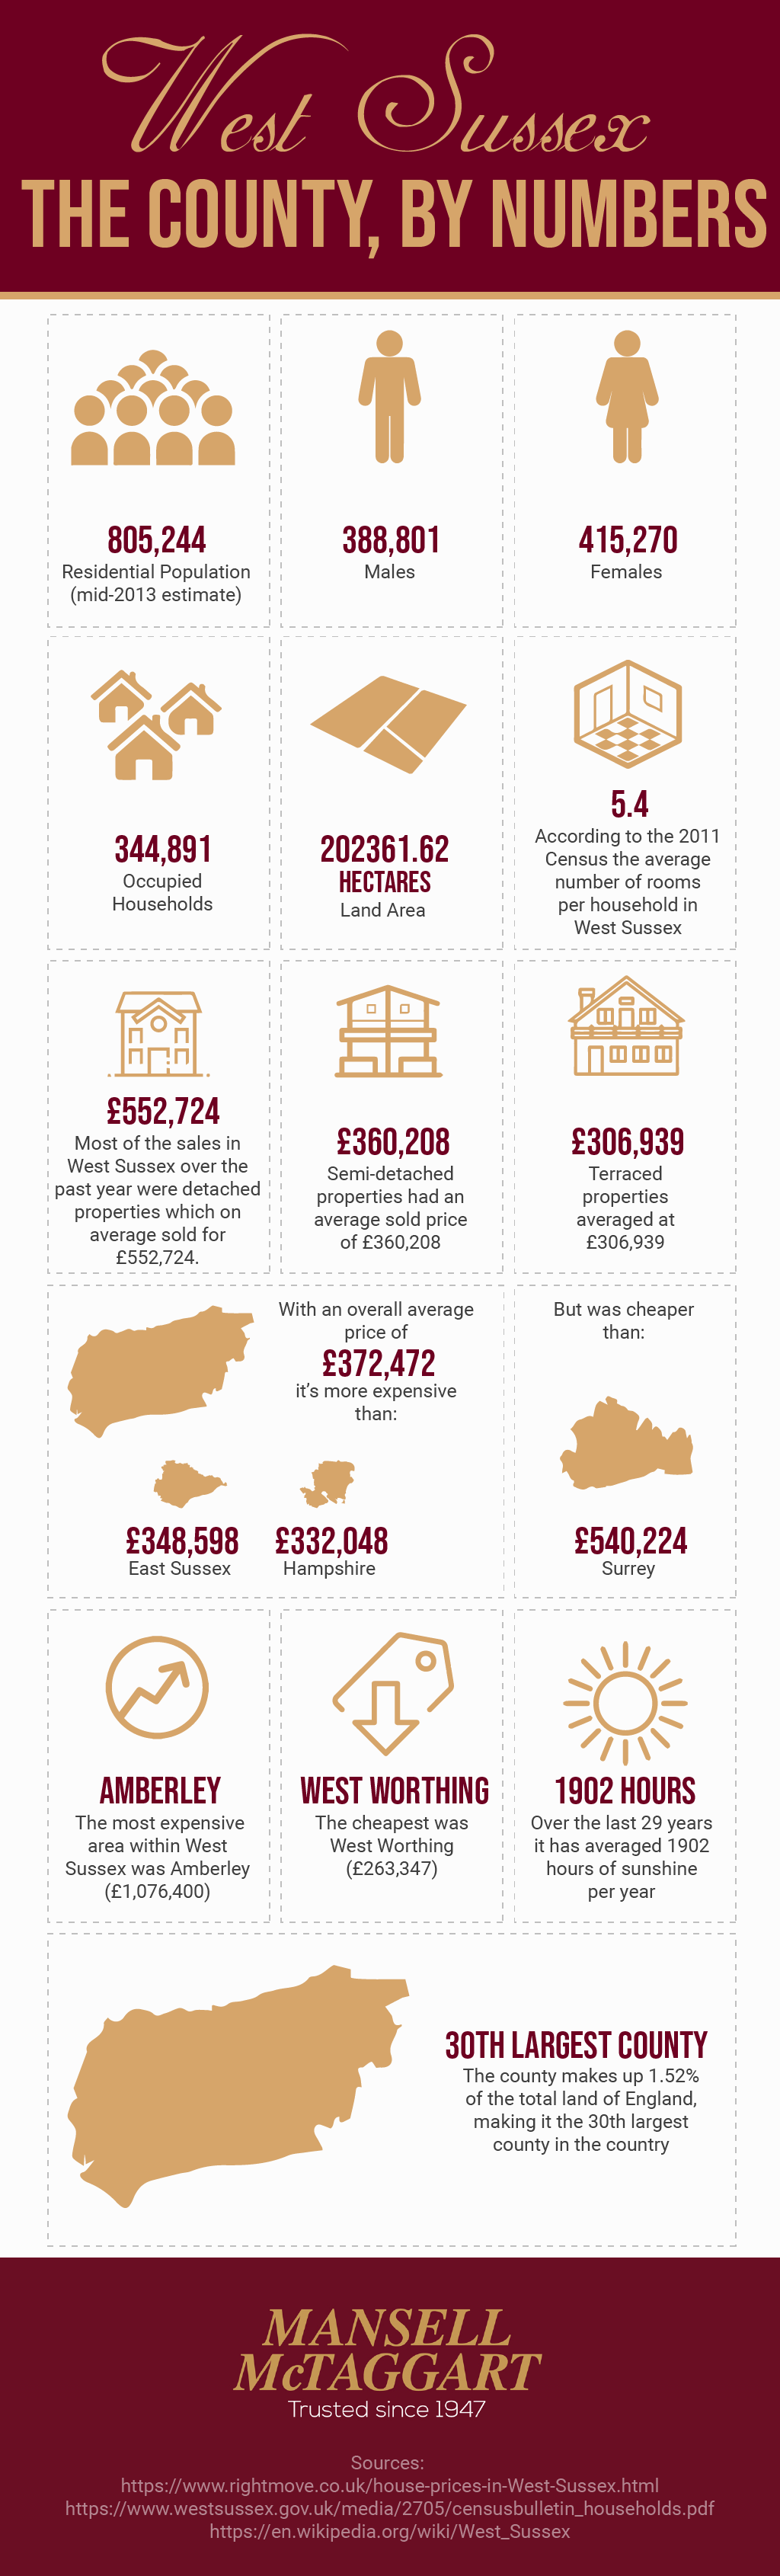 west sussex infographic